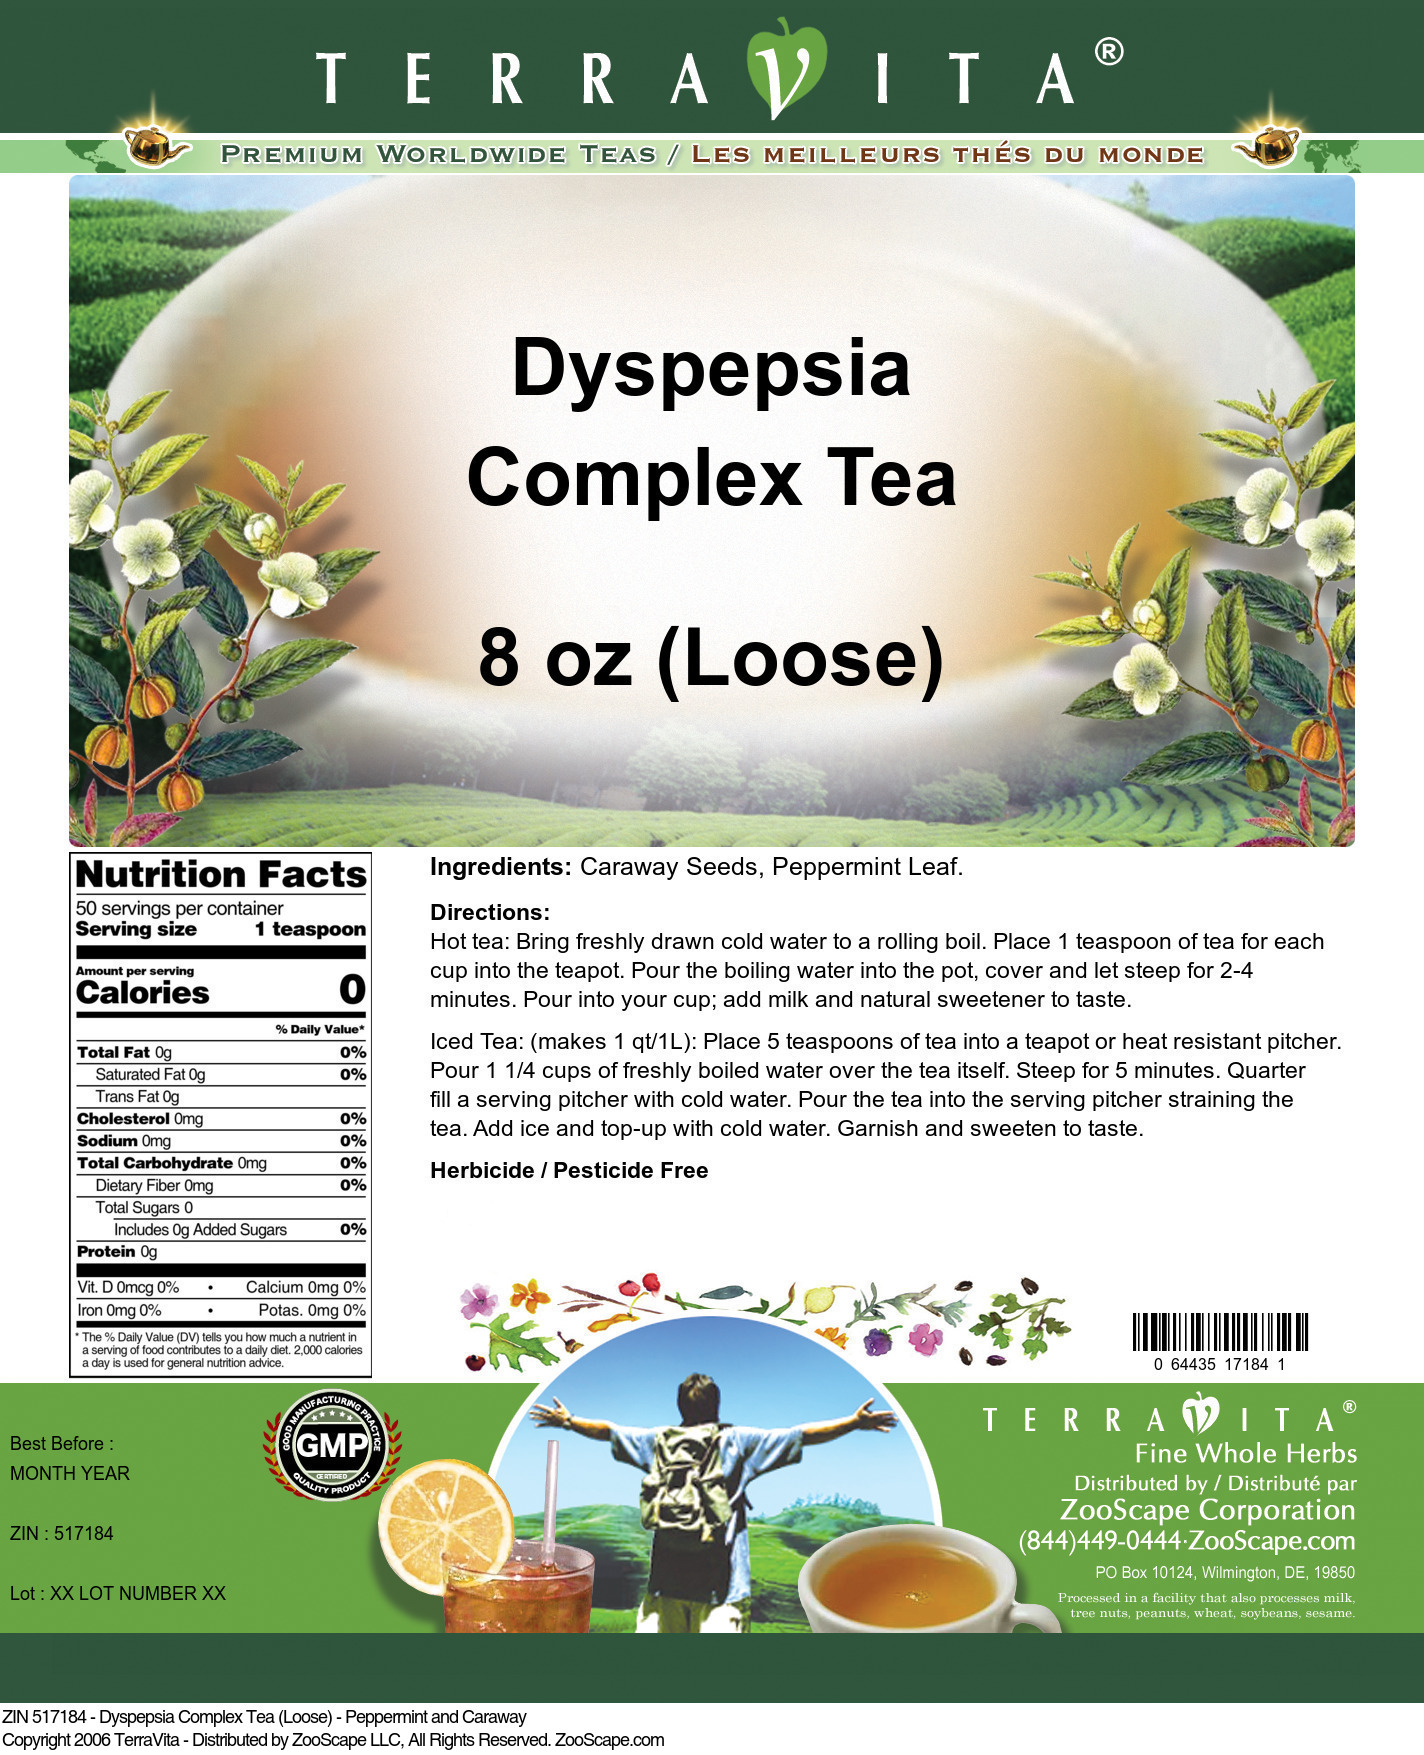 Dyspepsia Complex Tea (Loose) - Peppermint and Caraway